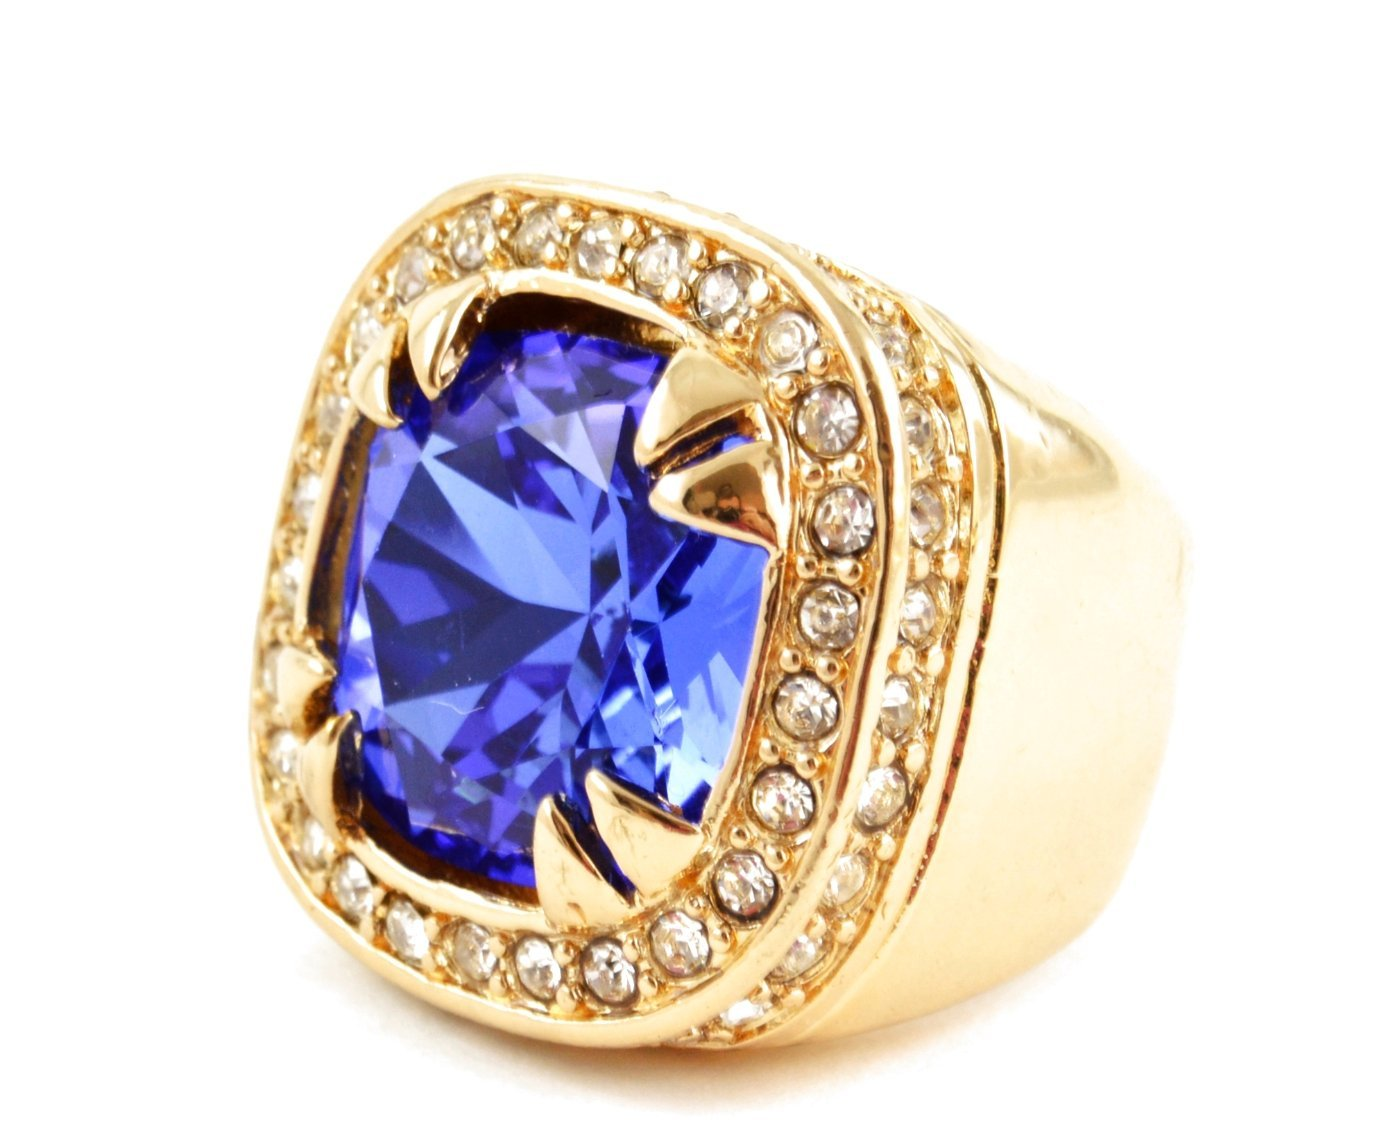 mens yellow gold finish sapphire gem solitaire signet ring. Black Bedroom Furniture Sets. Home Design Ideas